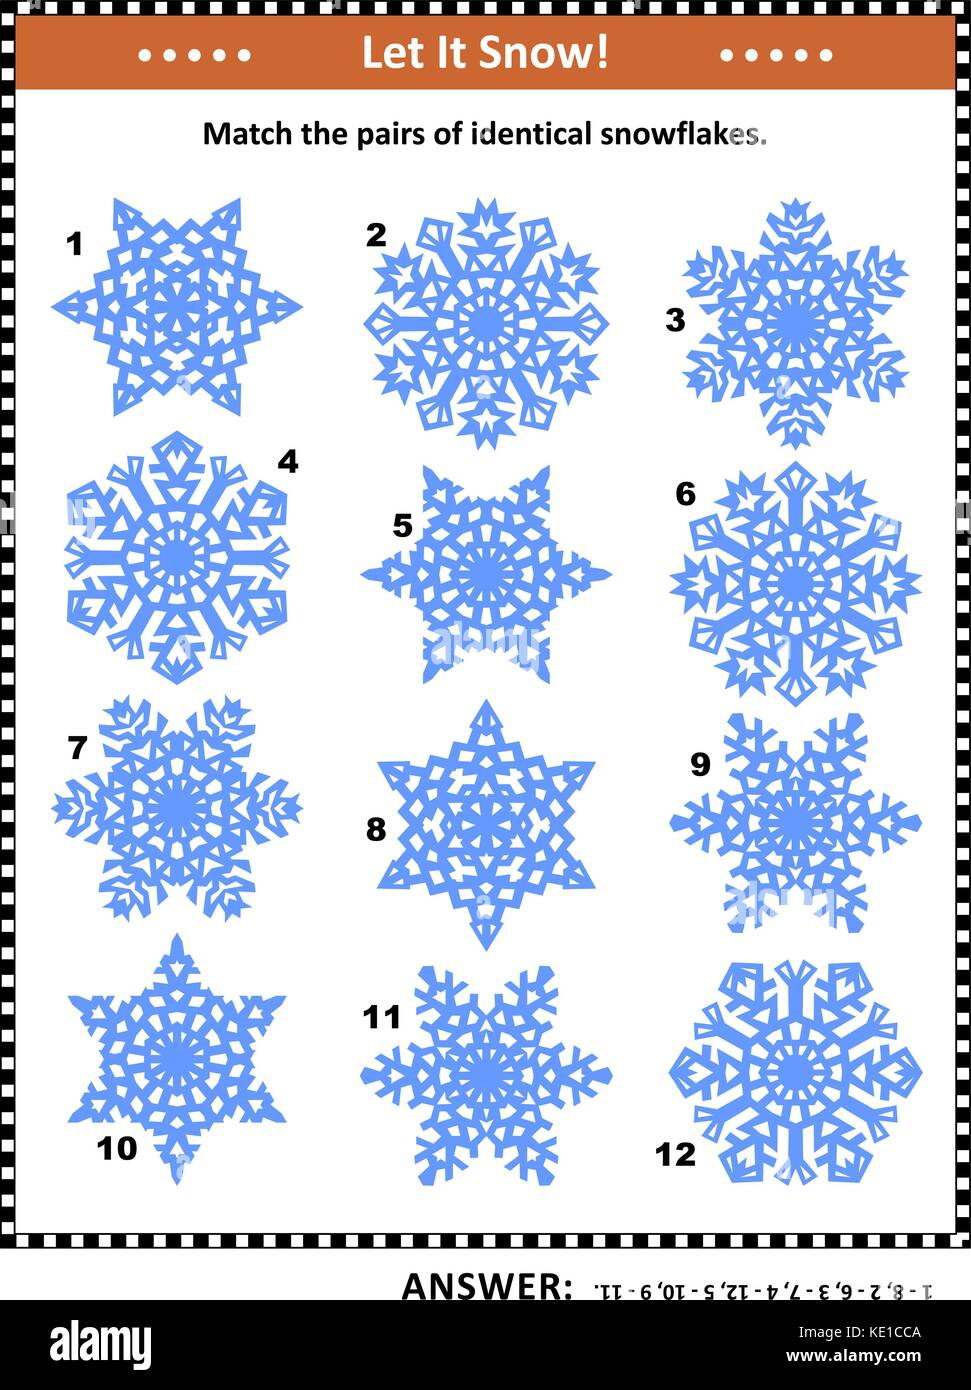 Winter and holidays themed visual puzzle: Match the pairs of identical snowflakes. Answer included. - Stock Image